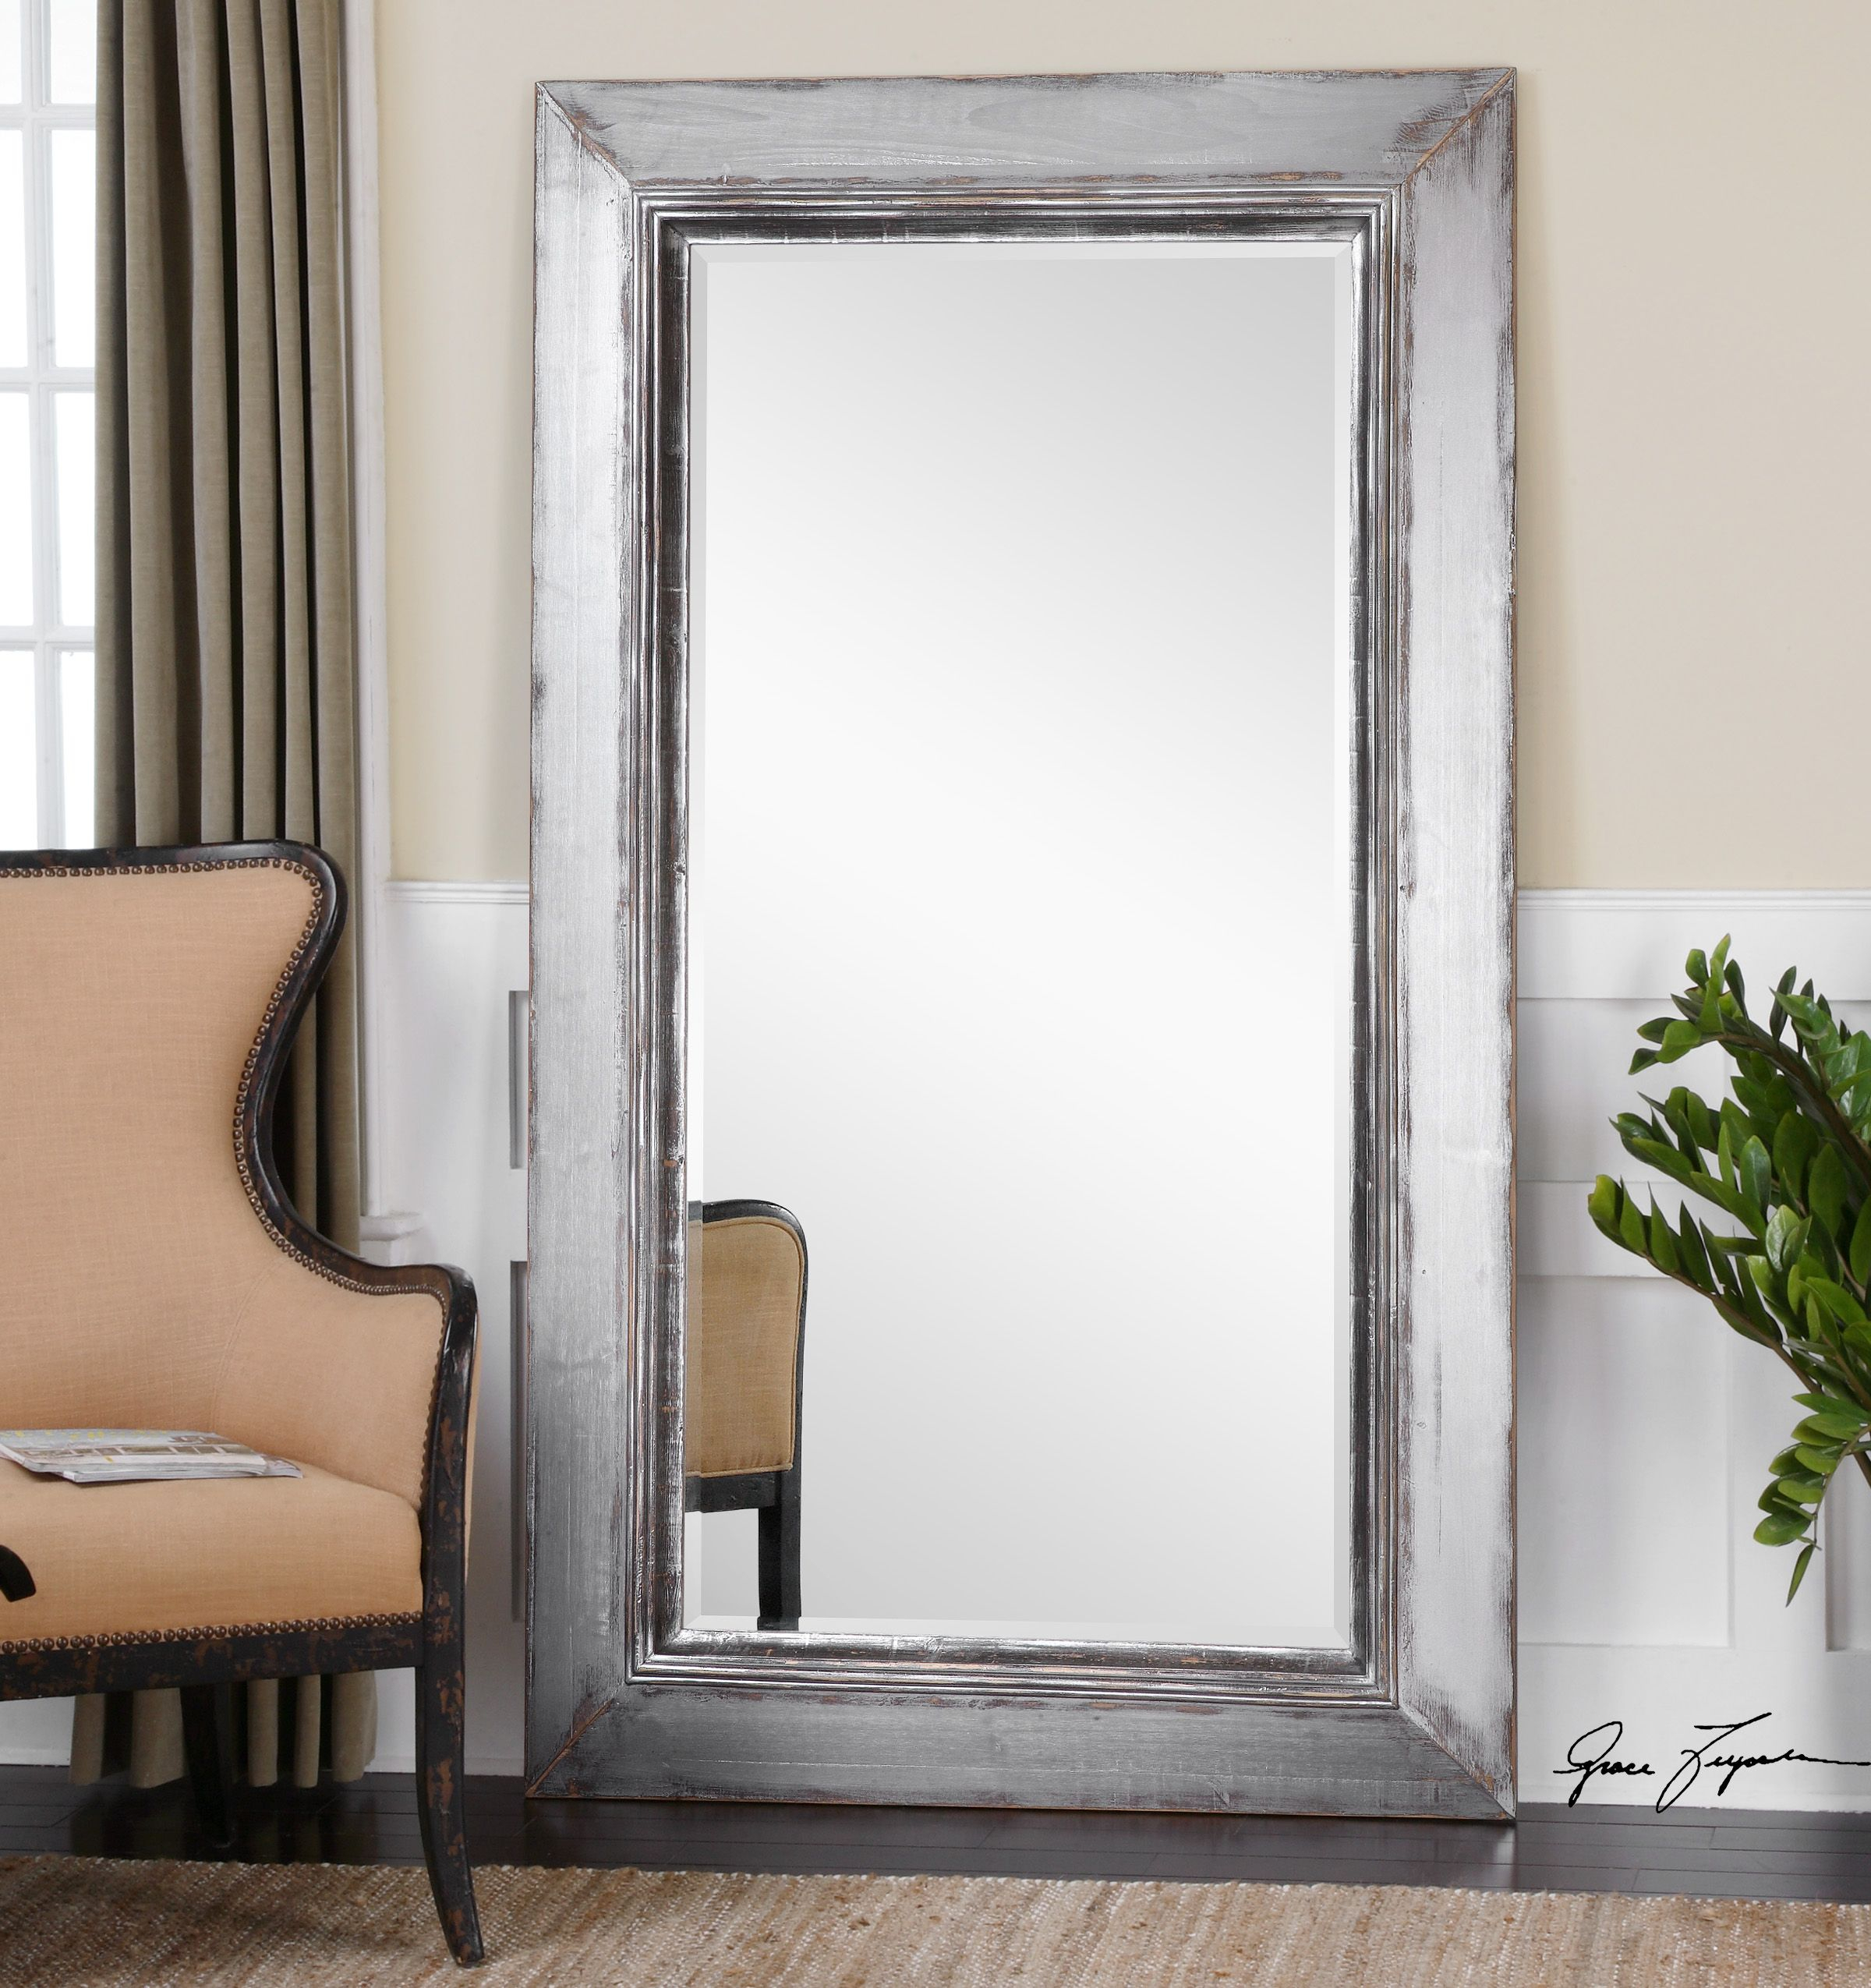 How To Secure A Leaning Mirror Throughout Leaning Mirrors (View 10 of 20)